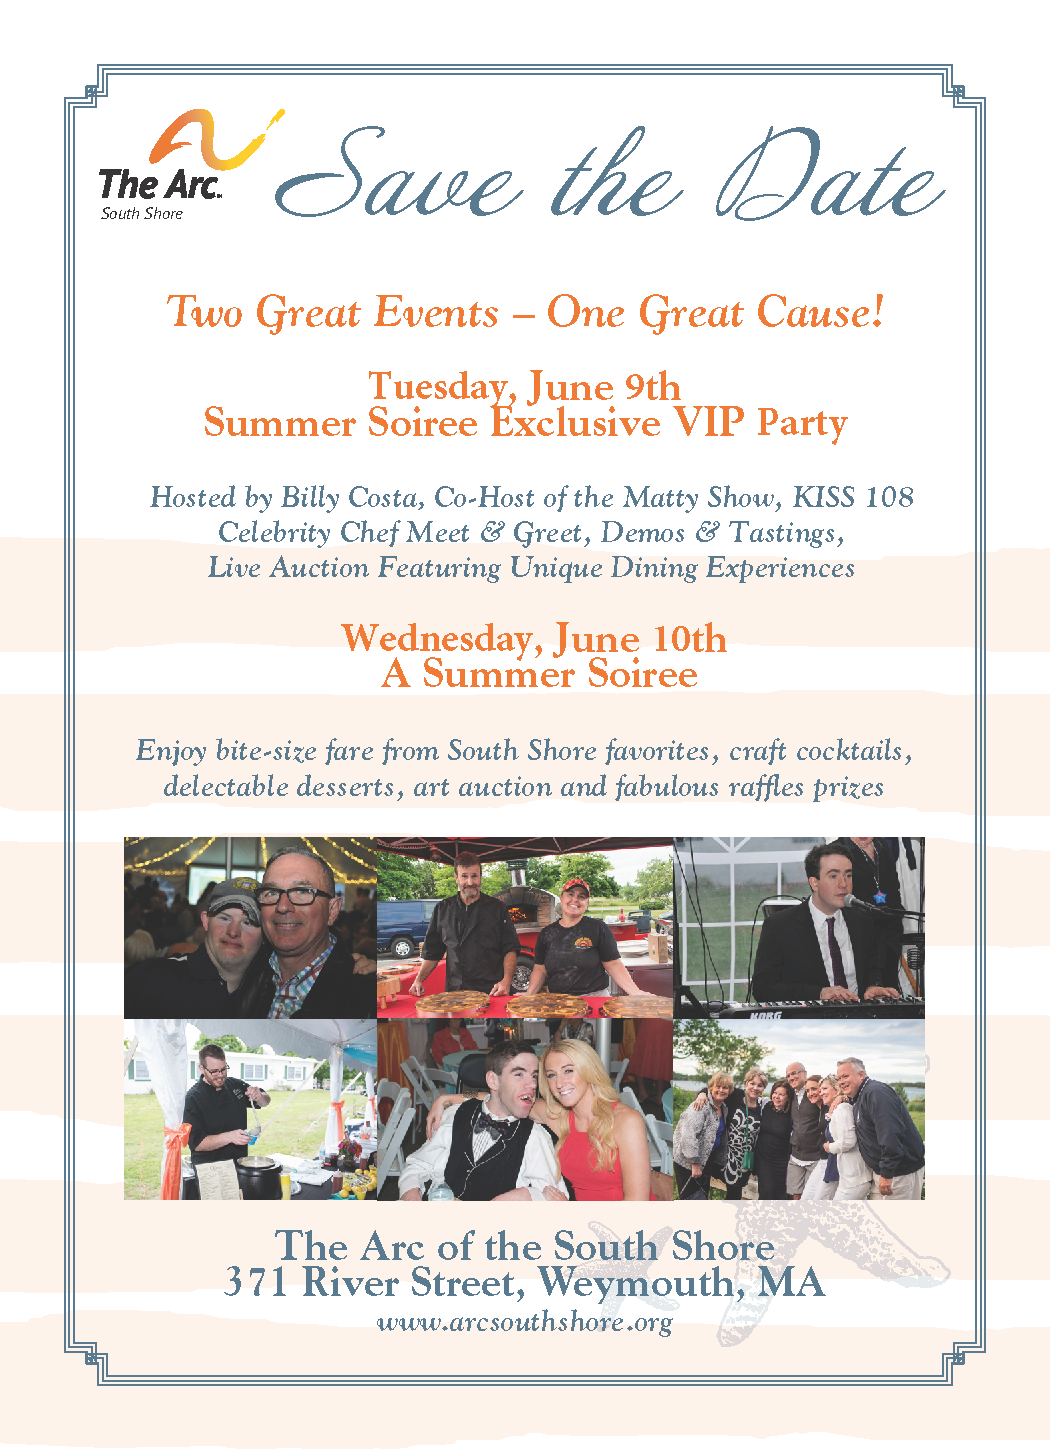 Summer Soiree Exclusive VIP Party